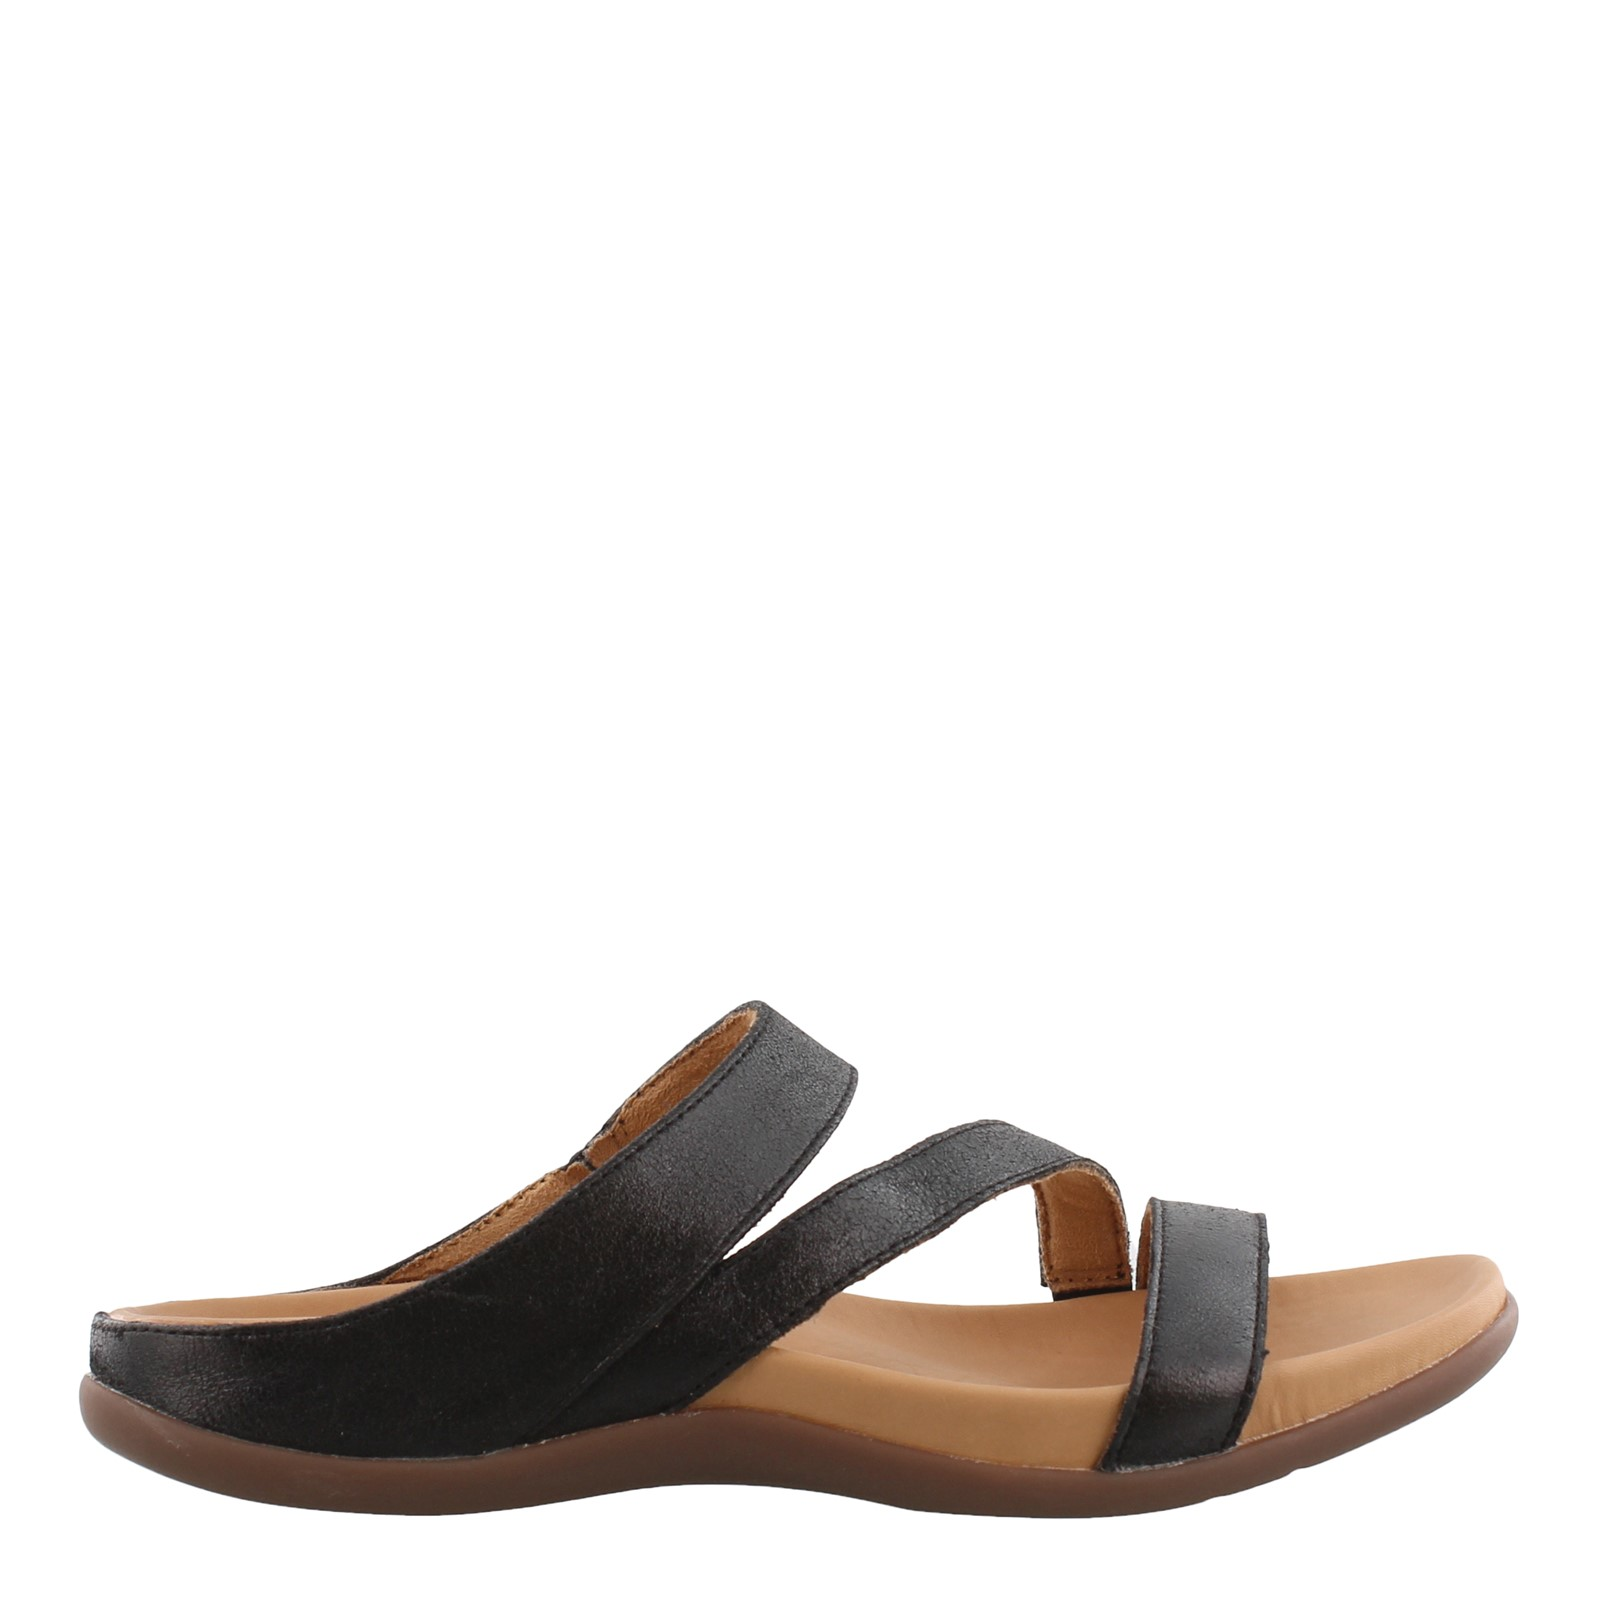 Strive Trio Womens Ladies Orthotic Footbed Leather Slide Sandals Size UK 4 8